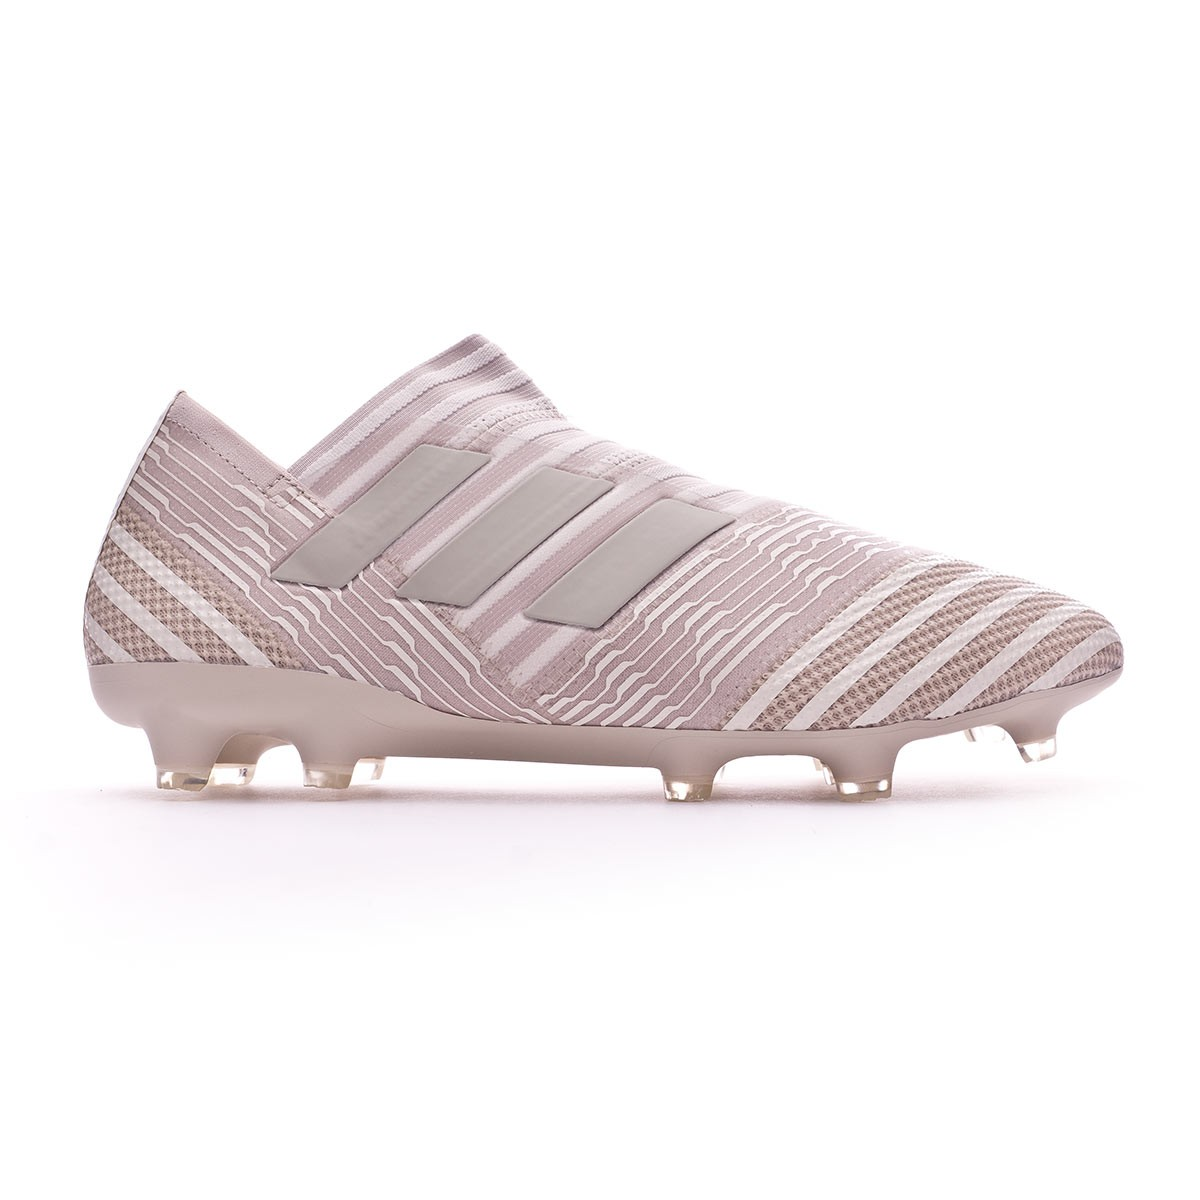 sale retailer 4c861 fc18e Boot adidas Nemeziz 17+ 360 Agility FG Clear Brown-Sesame-Chalk white -  Football store Fútbol Emotion